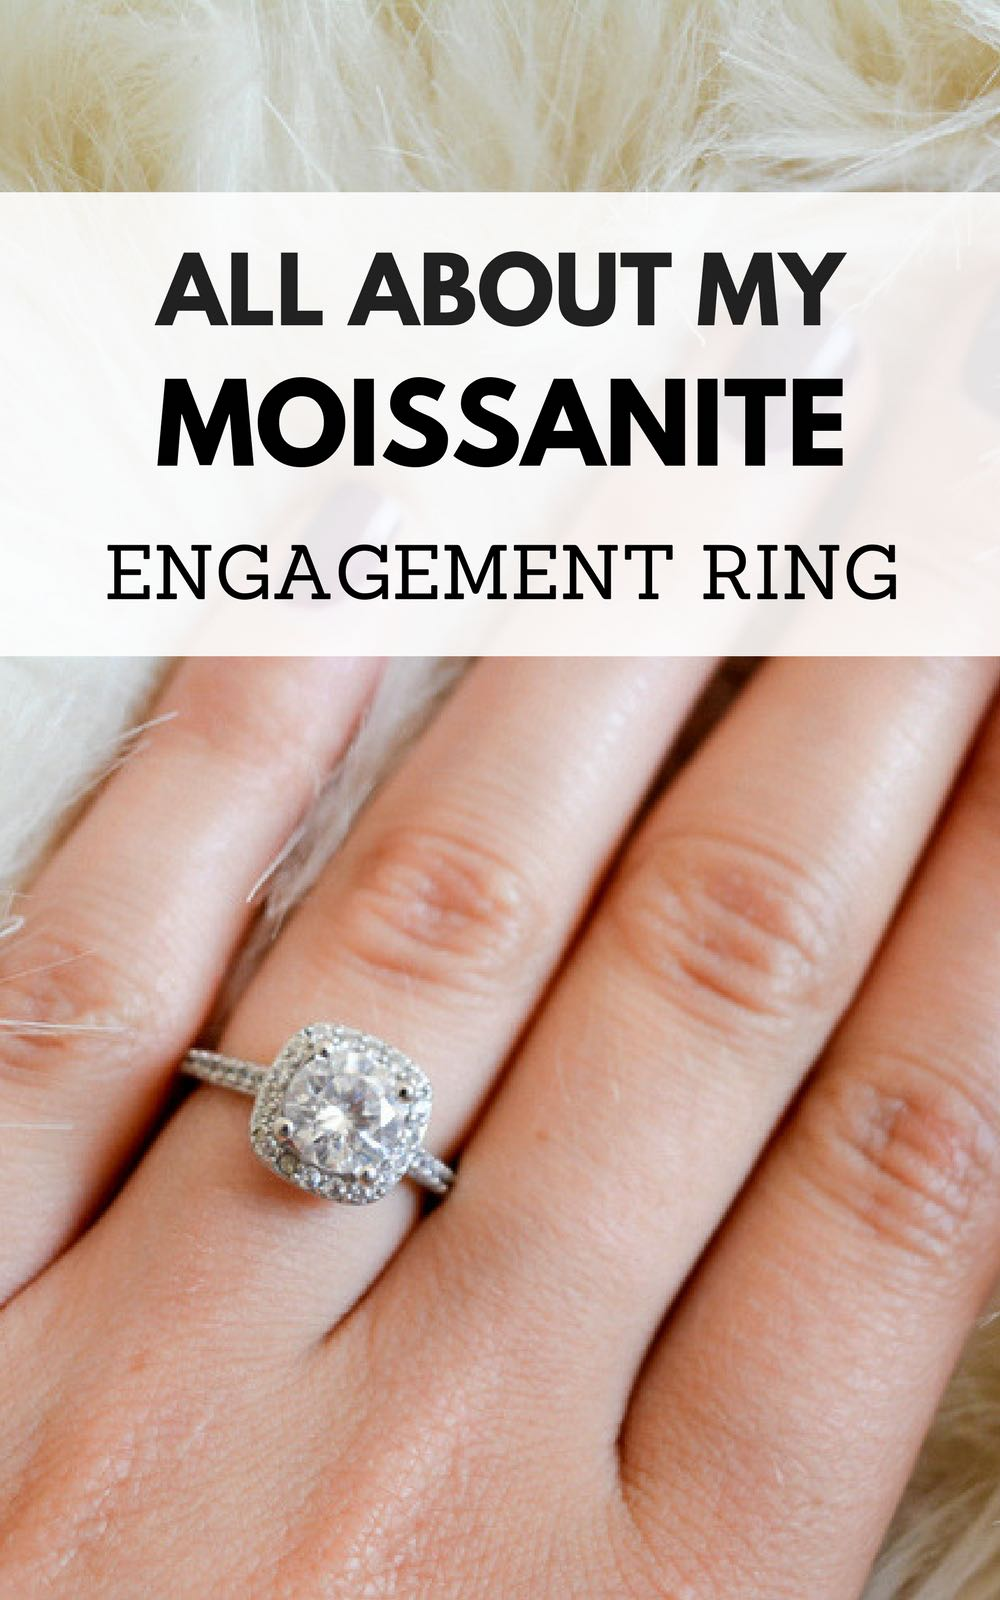 not engagement amber wedding rings ht ml ring zsolt vinson before expensive cleaning nurse